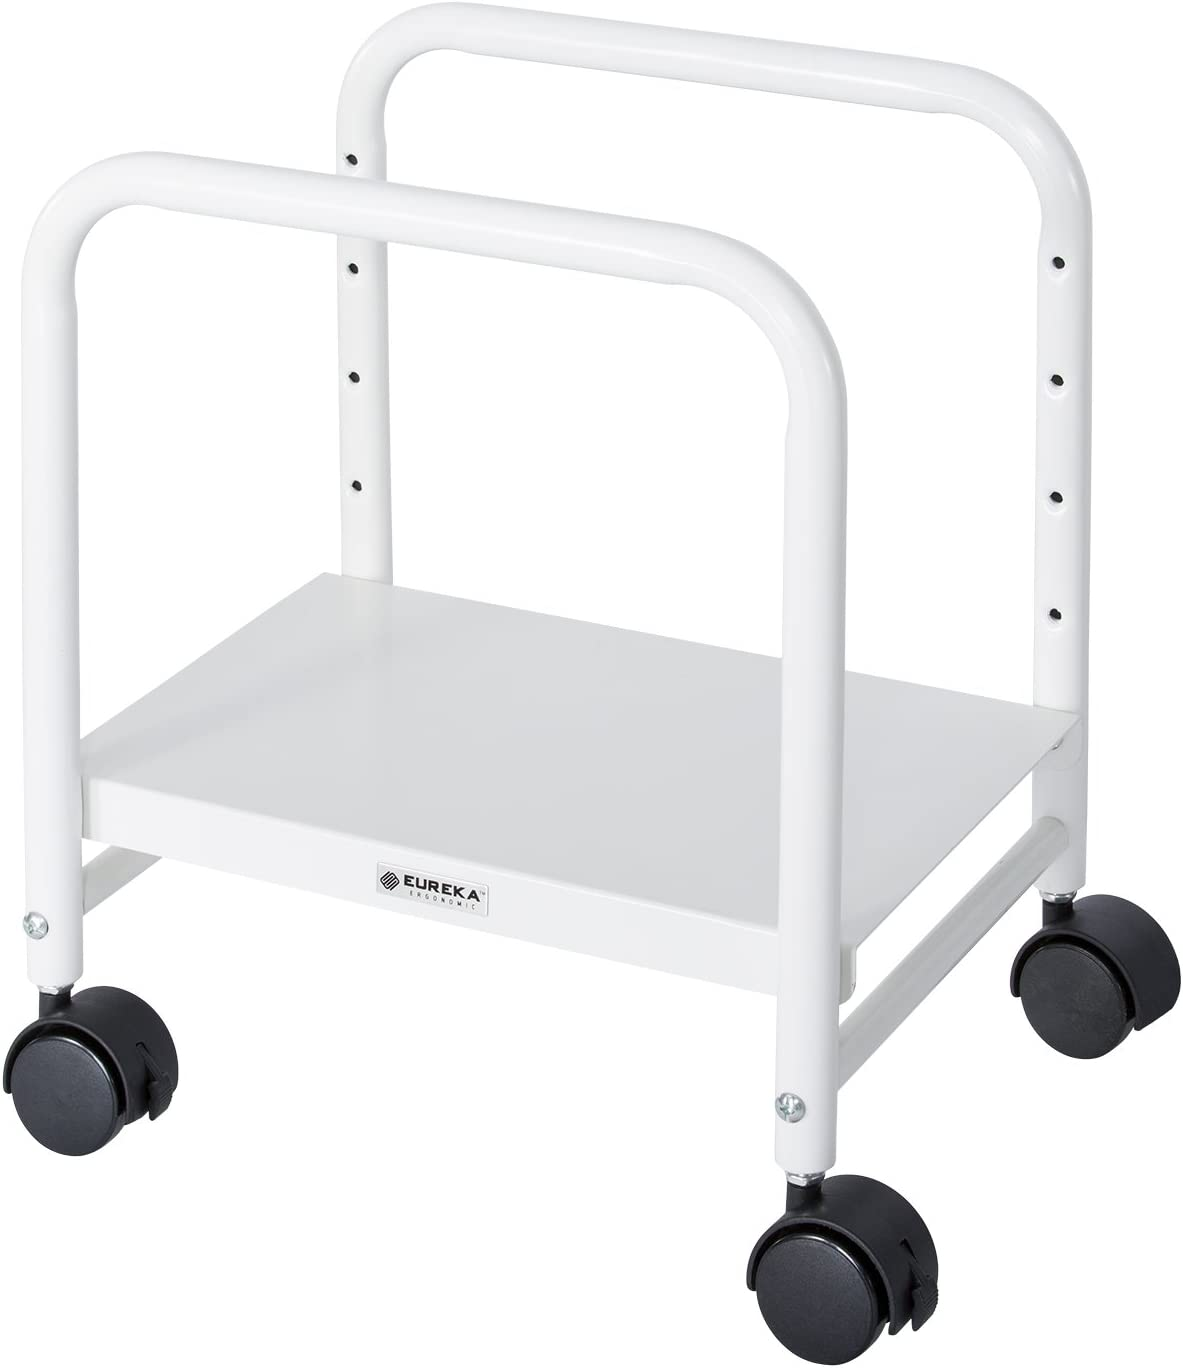 EUREKA ERGONOMIC Computer Cart, Height-Adjustable Mobile CPU Stand Suitable for Sit Stand Desk Converters, White